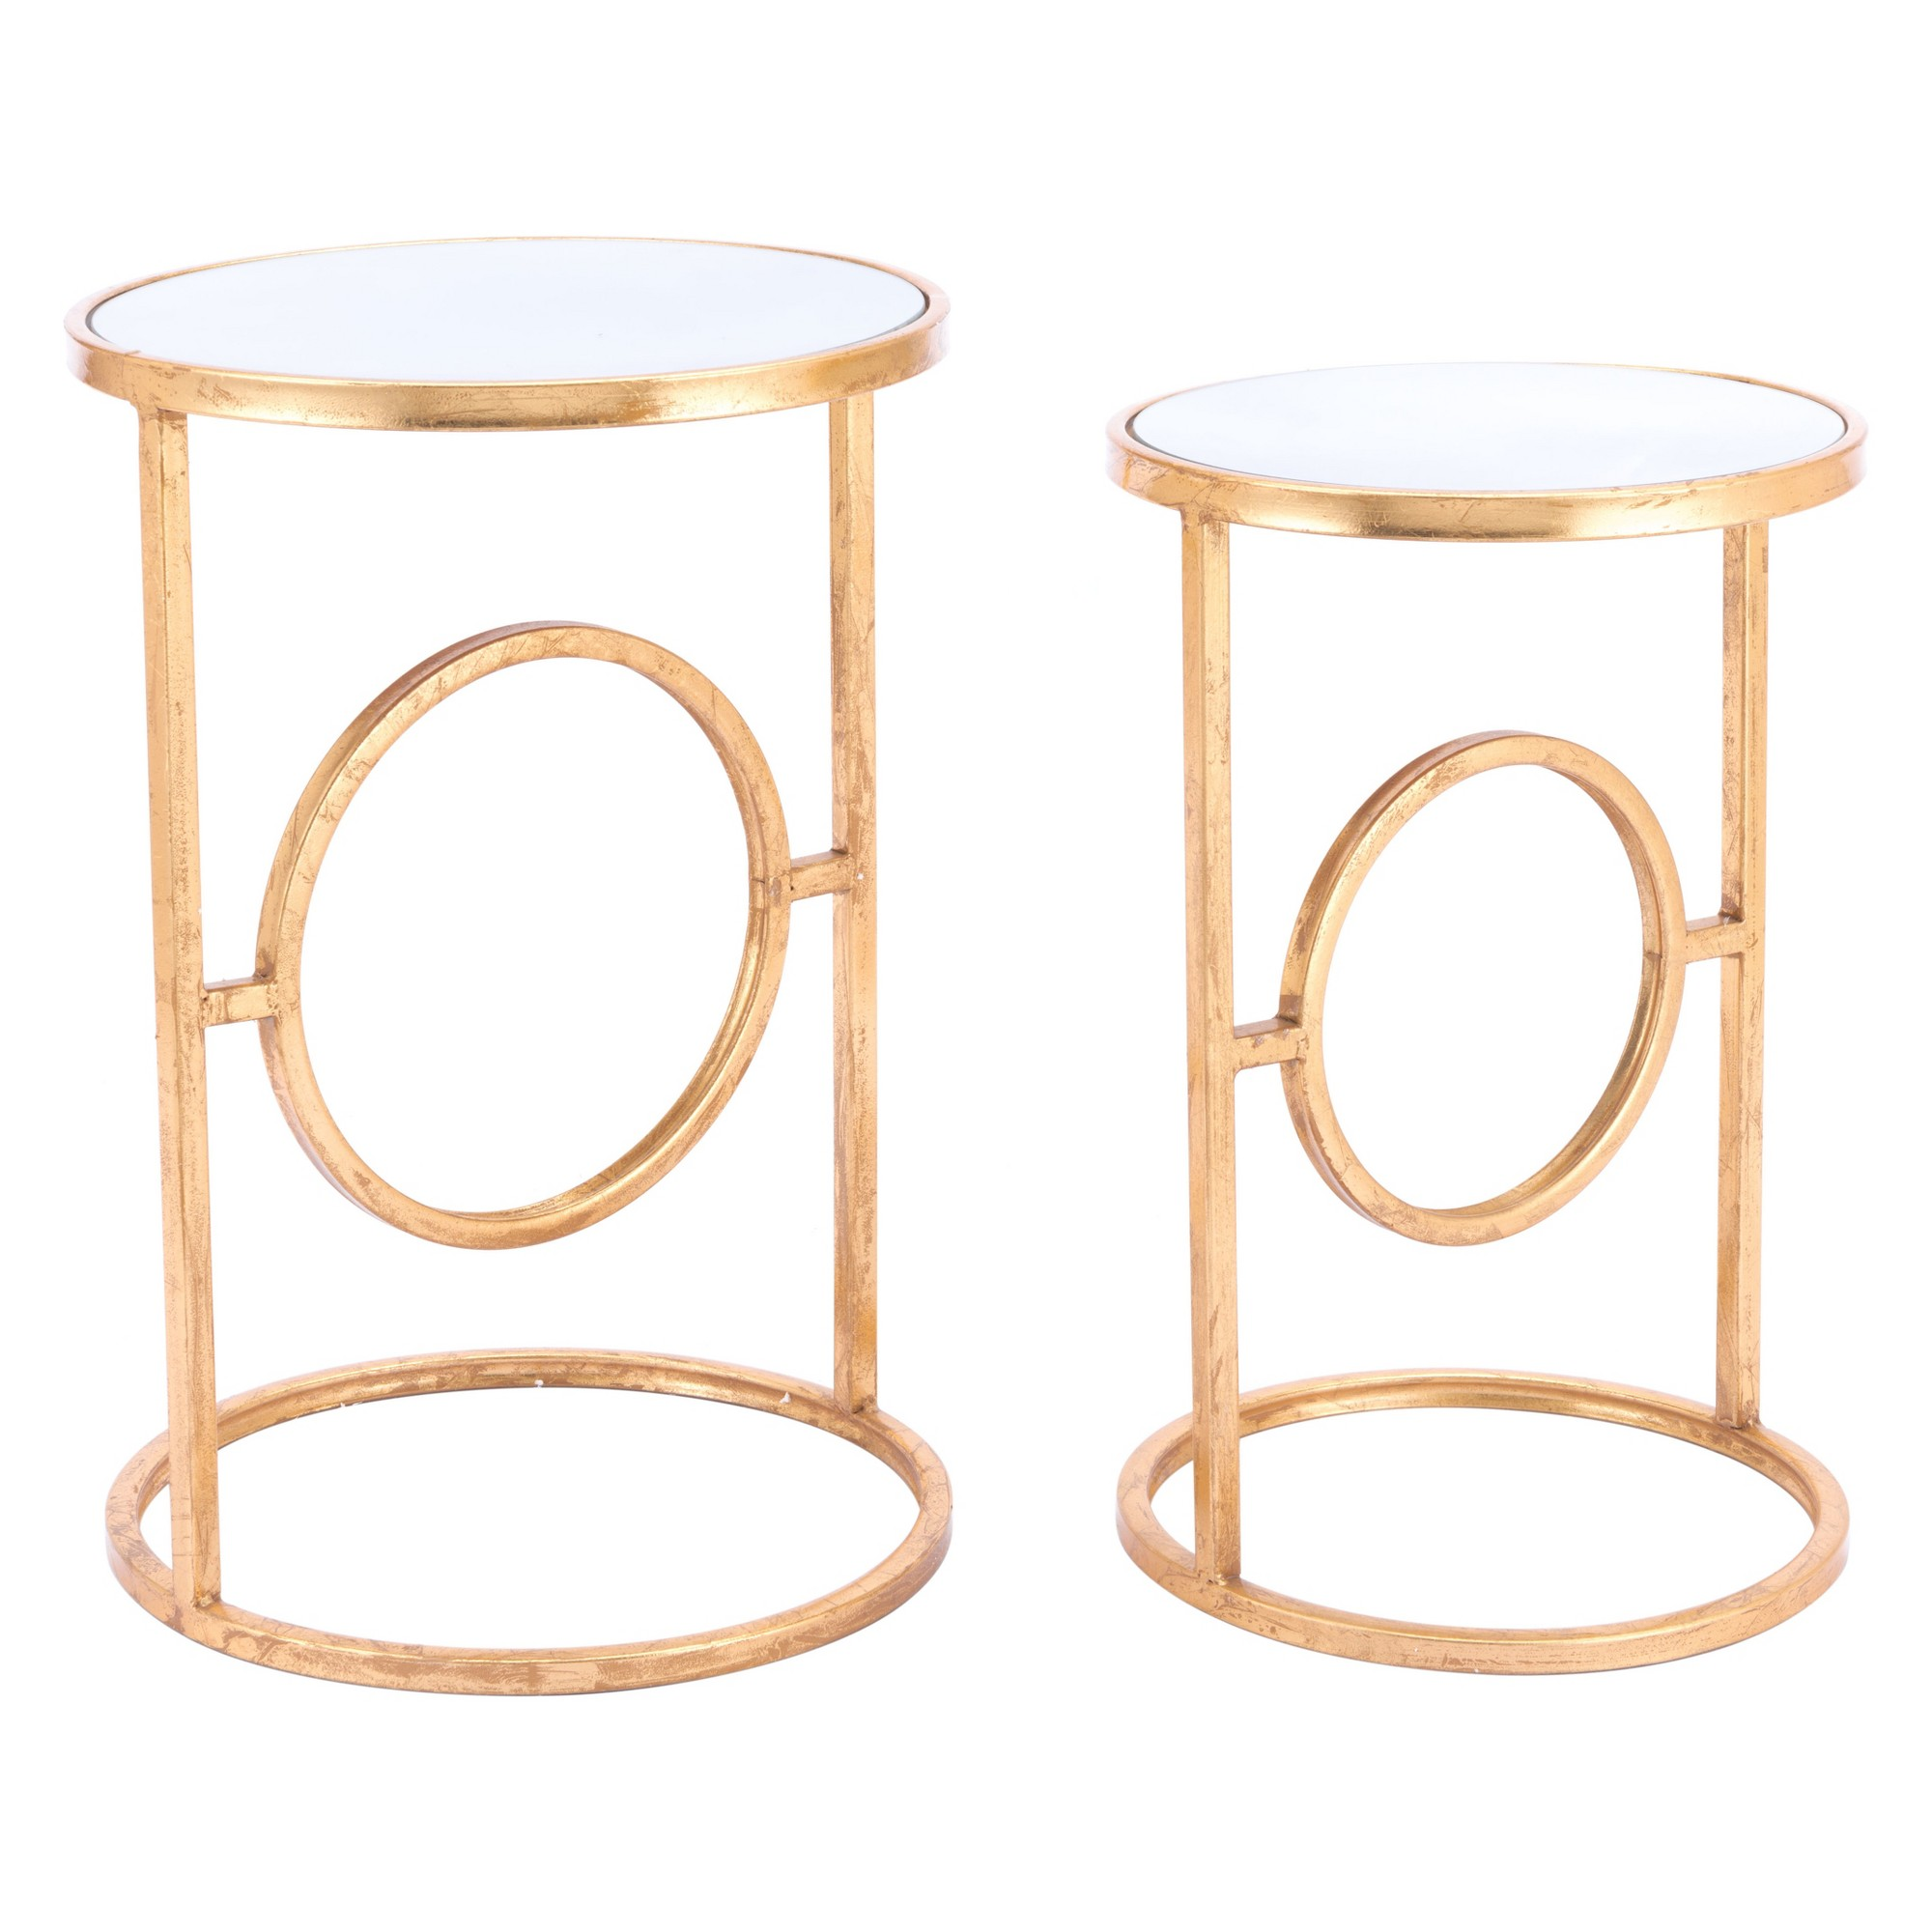 luxe steel mirror accent tables set gold home table and target white dresser small garden pier one vases round outdoor cocktail runner quilt patterns marble room essentials office